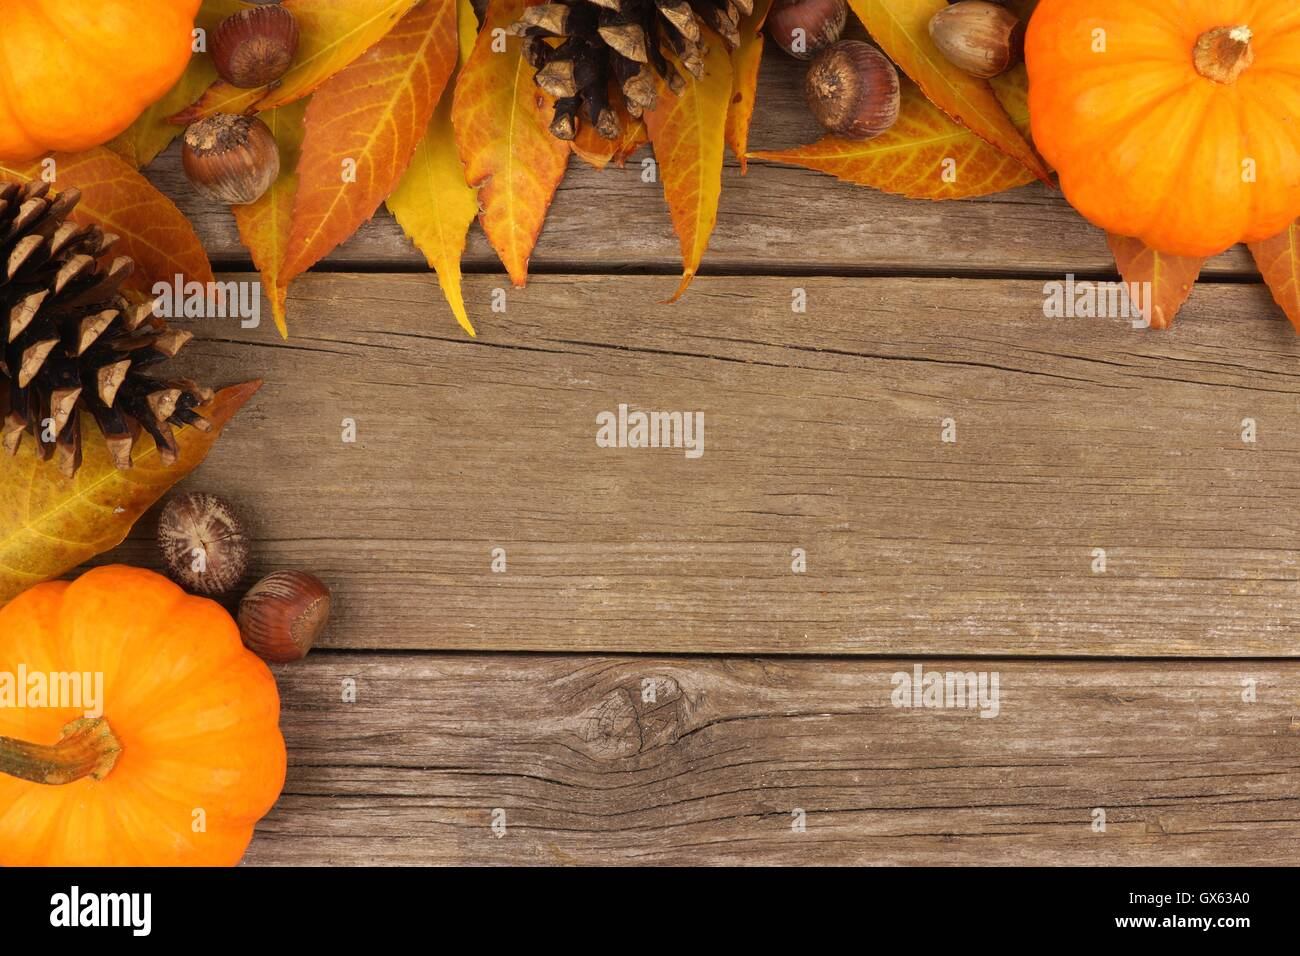 Autumn Corner Border Of Pumpkins Leaves And Pine Cones Against A Rustic Wood Background